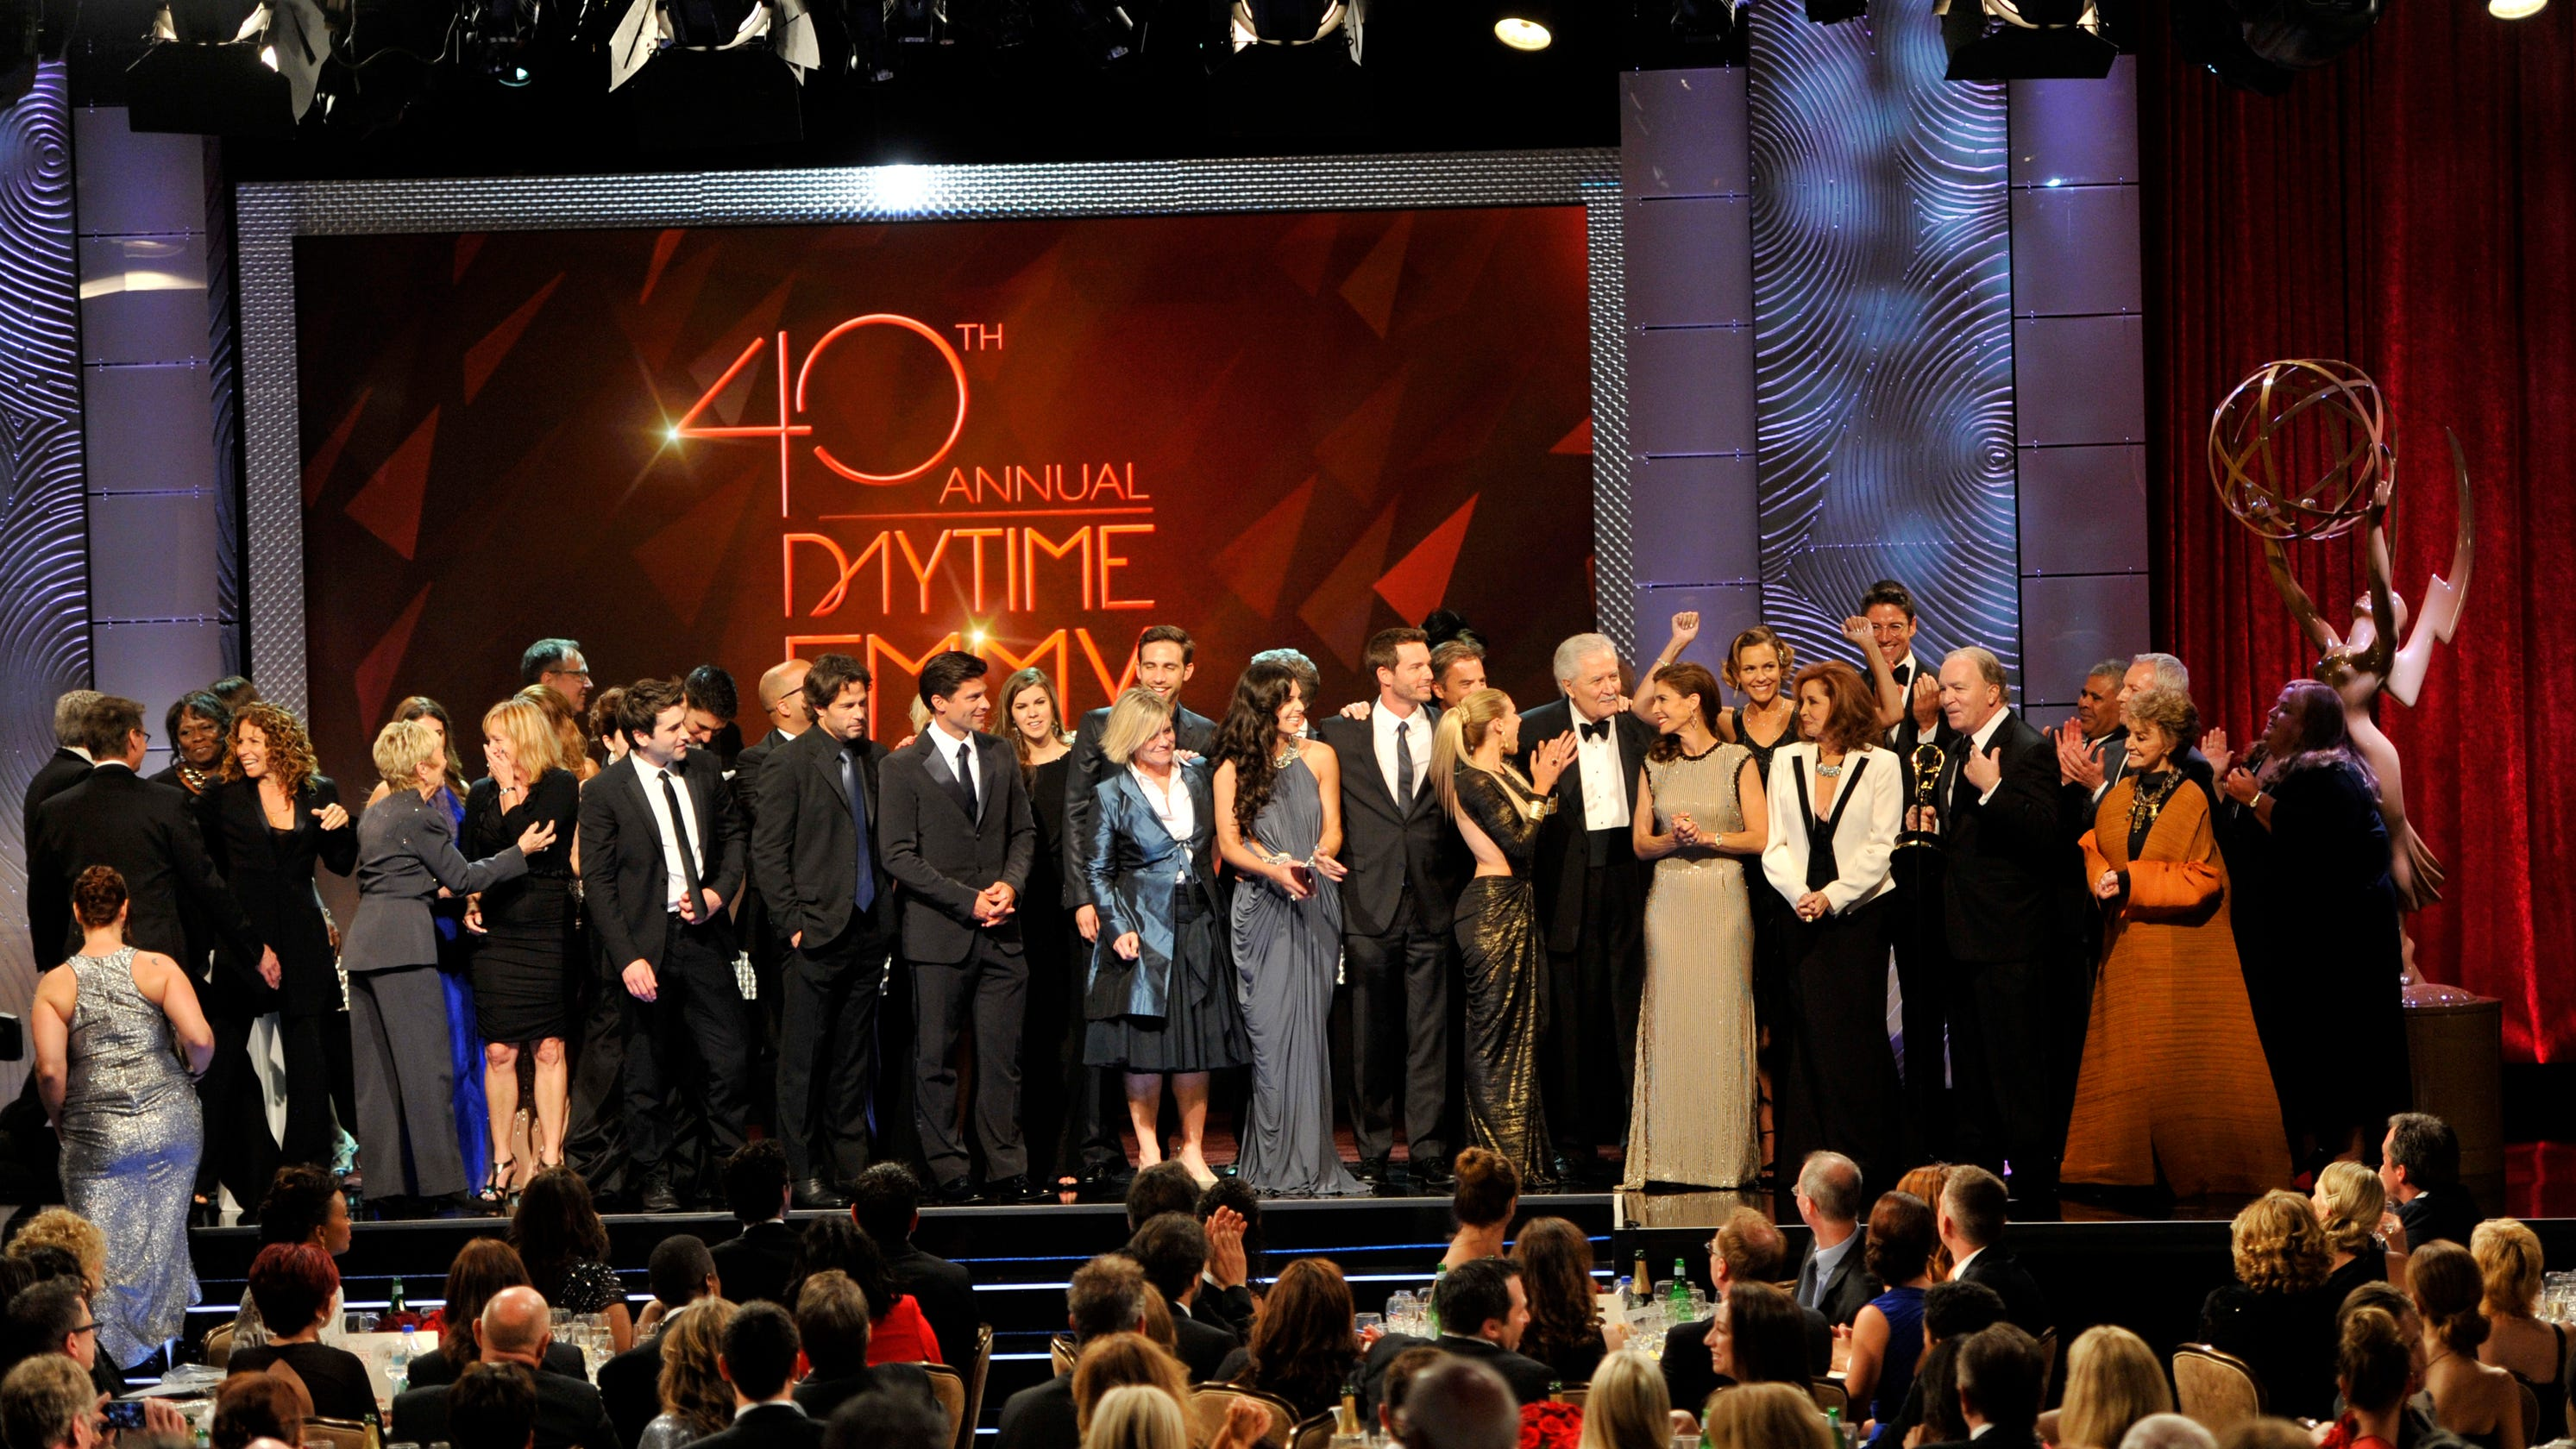 'Days of Our Lives' will go on an indefinite hiatus after laying off the entire cast